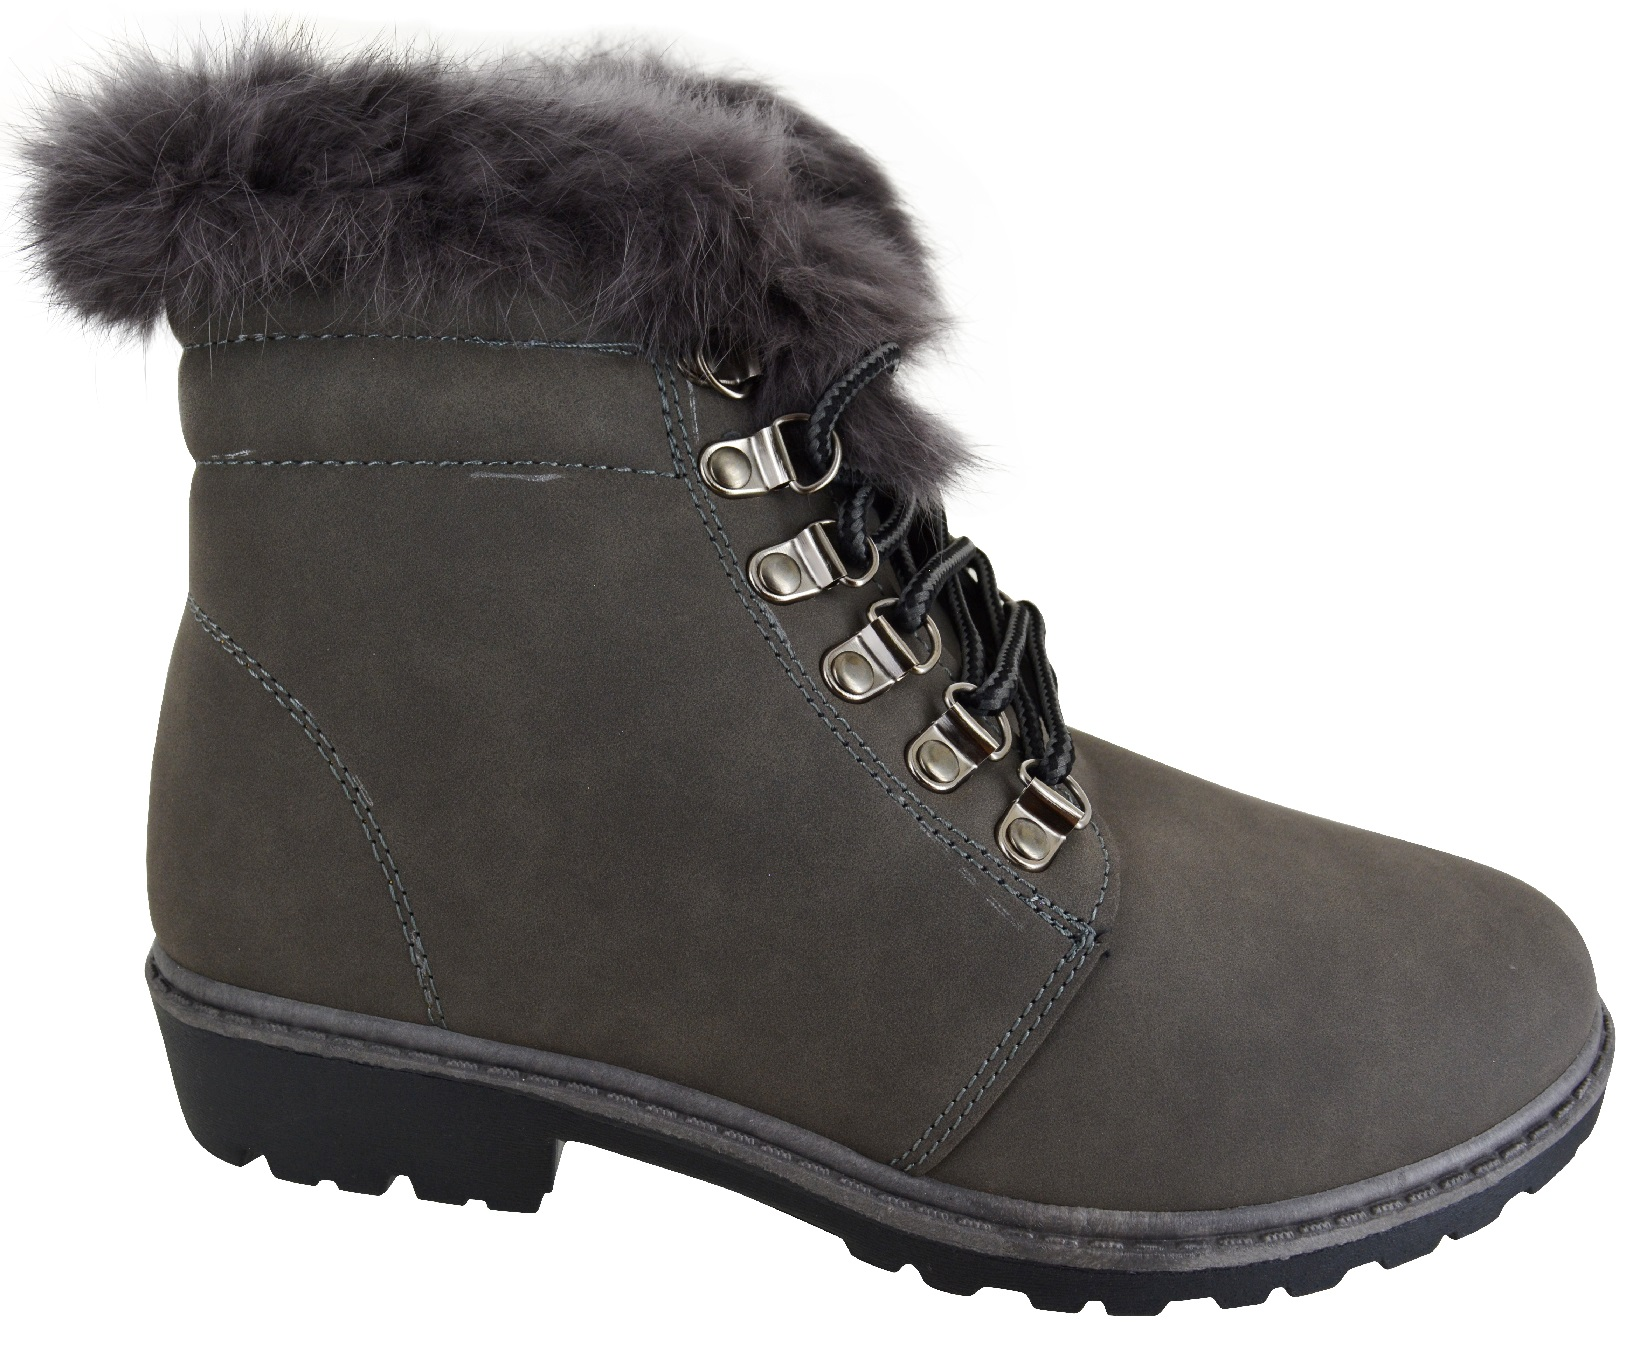 LADIES WOMENS FLAT WARM WINTER LACE UP COMBAT ARMY GREY SOLE FAUX FUR BOOTS SZ